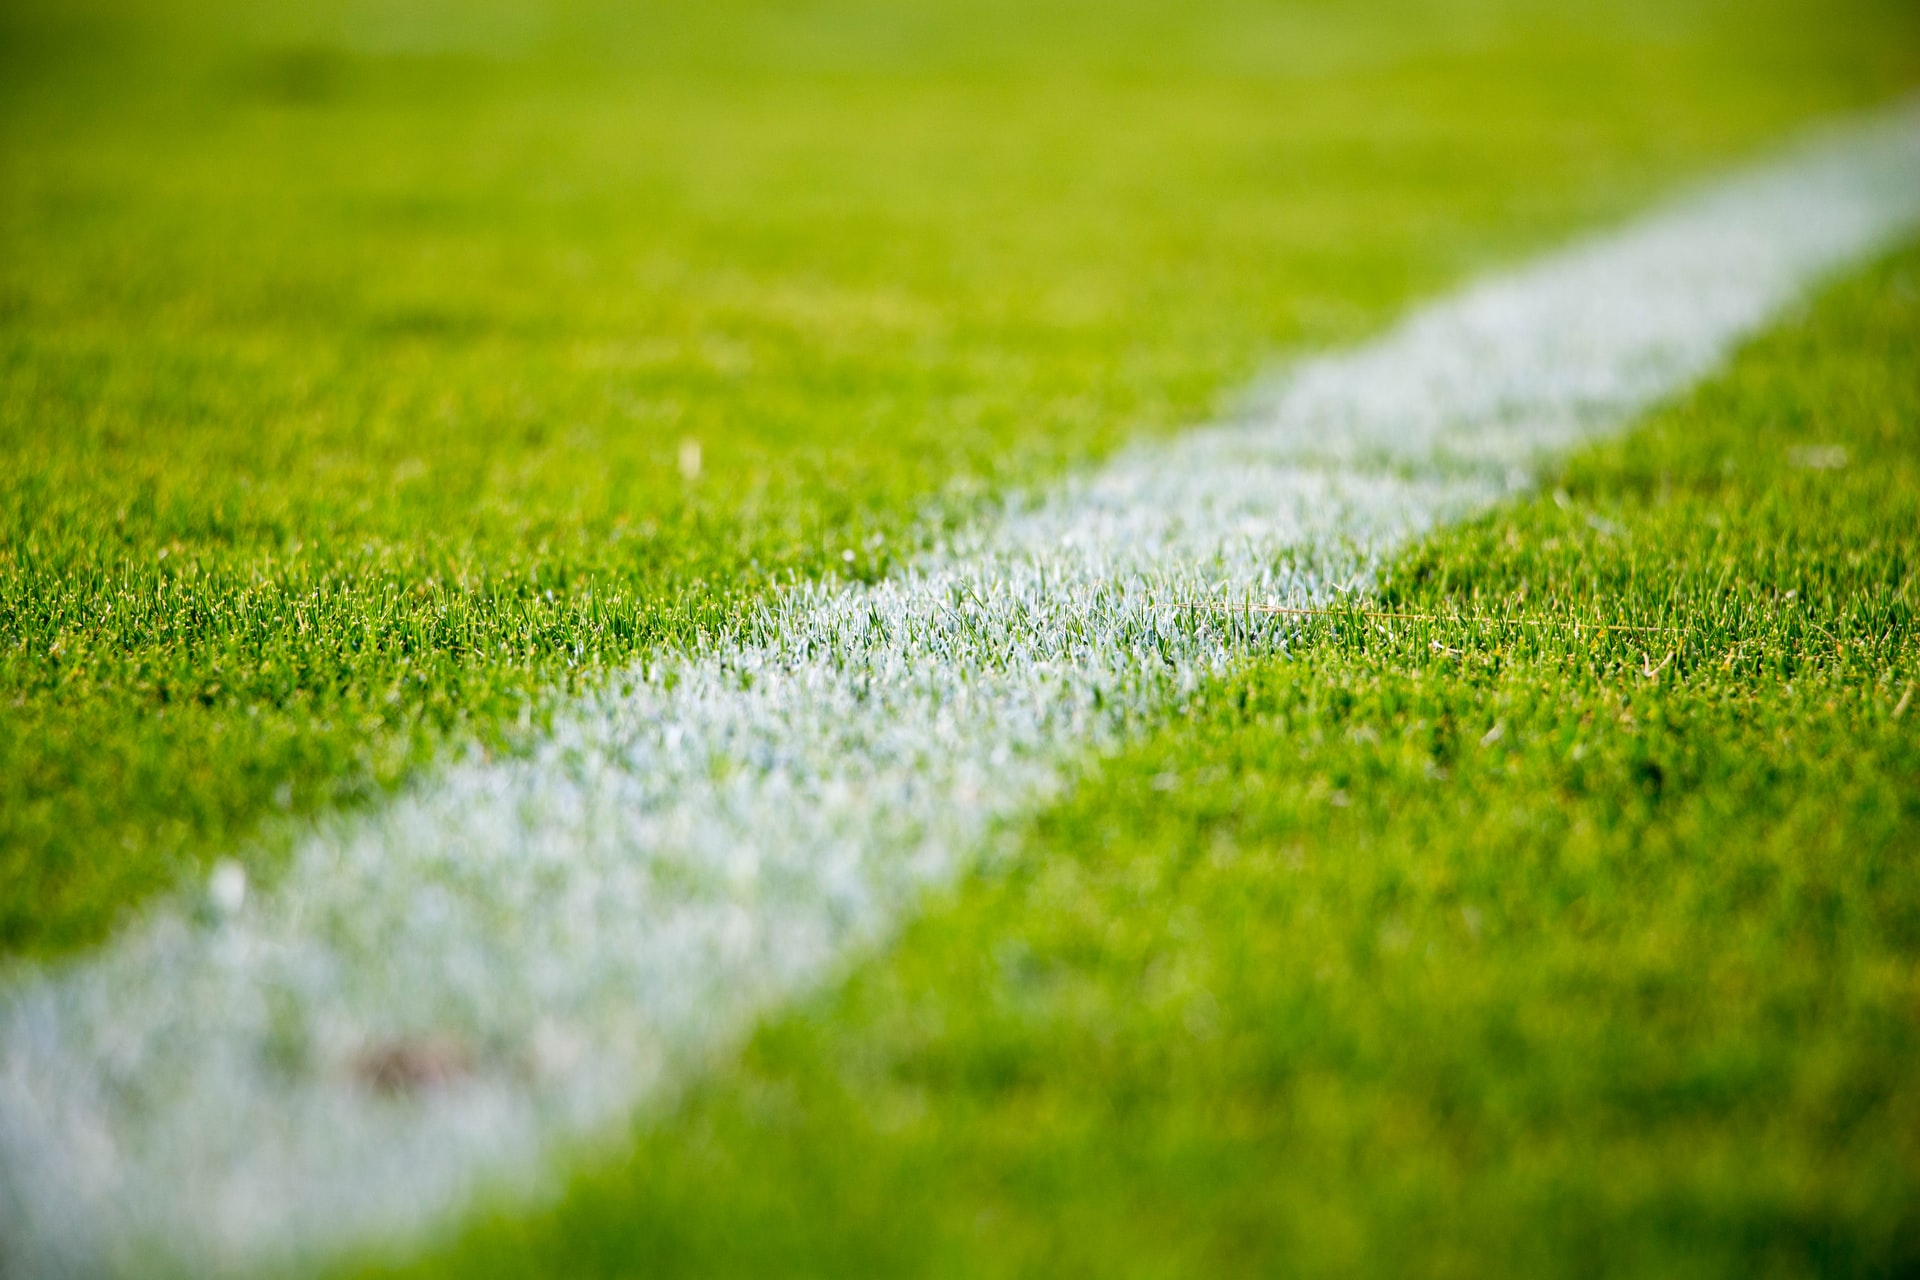 A close up image of a white-painted line of a bright green pitch.